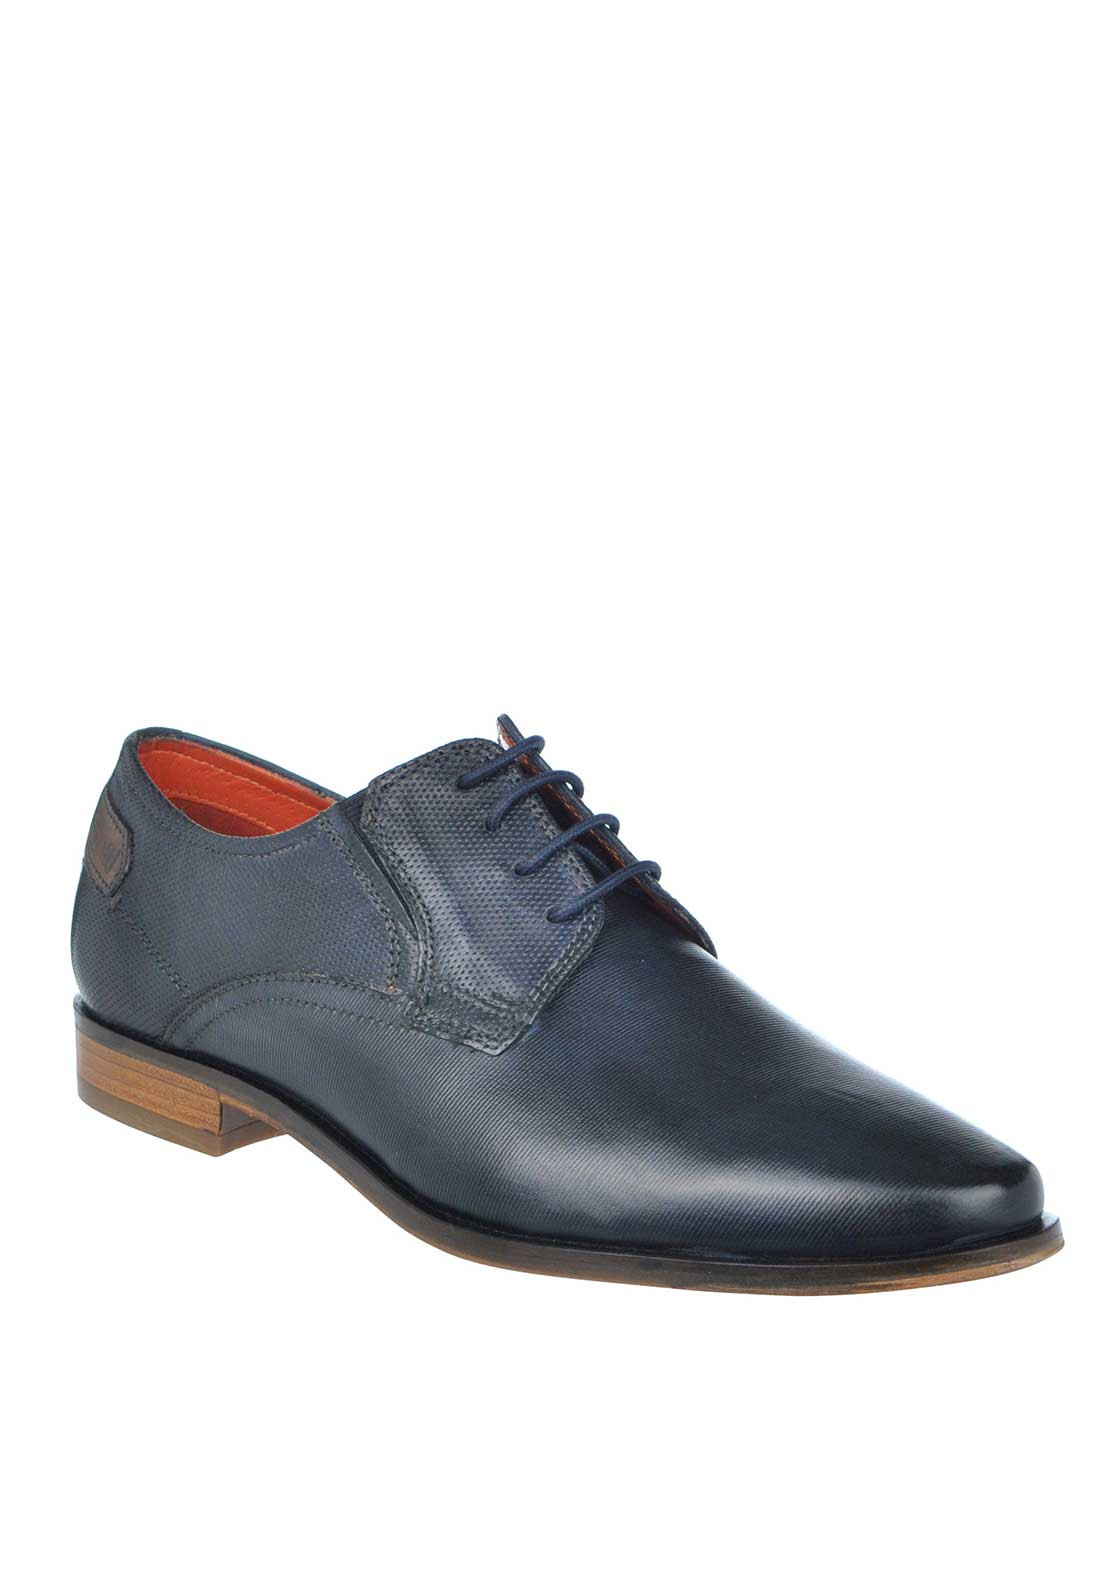 Bugatti Textured Lace Up Leather Shoes, Navy